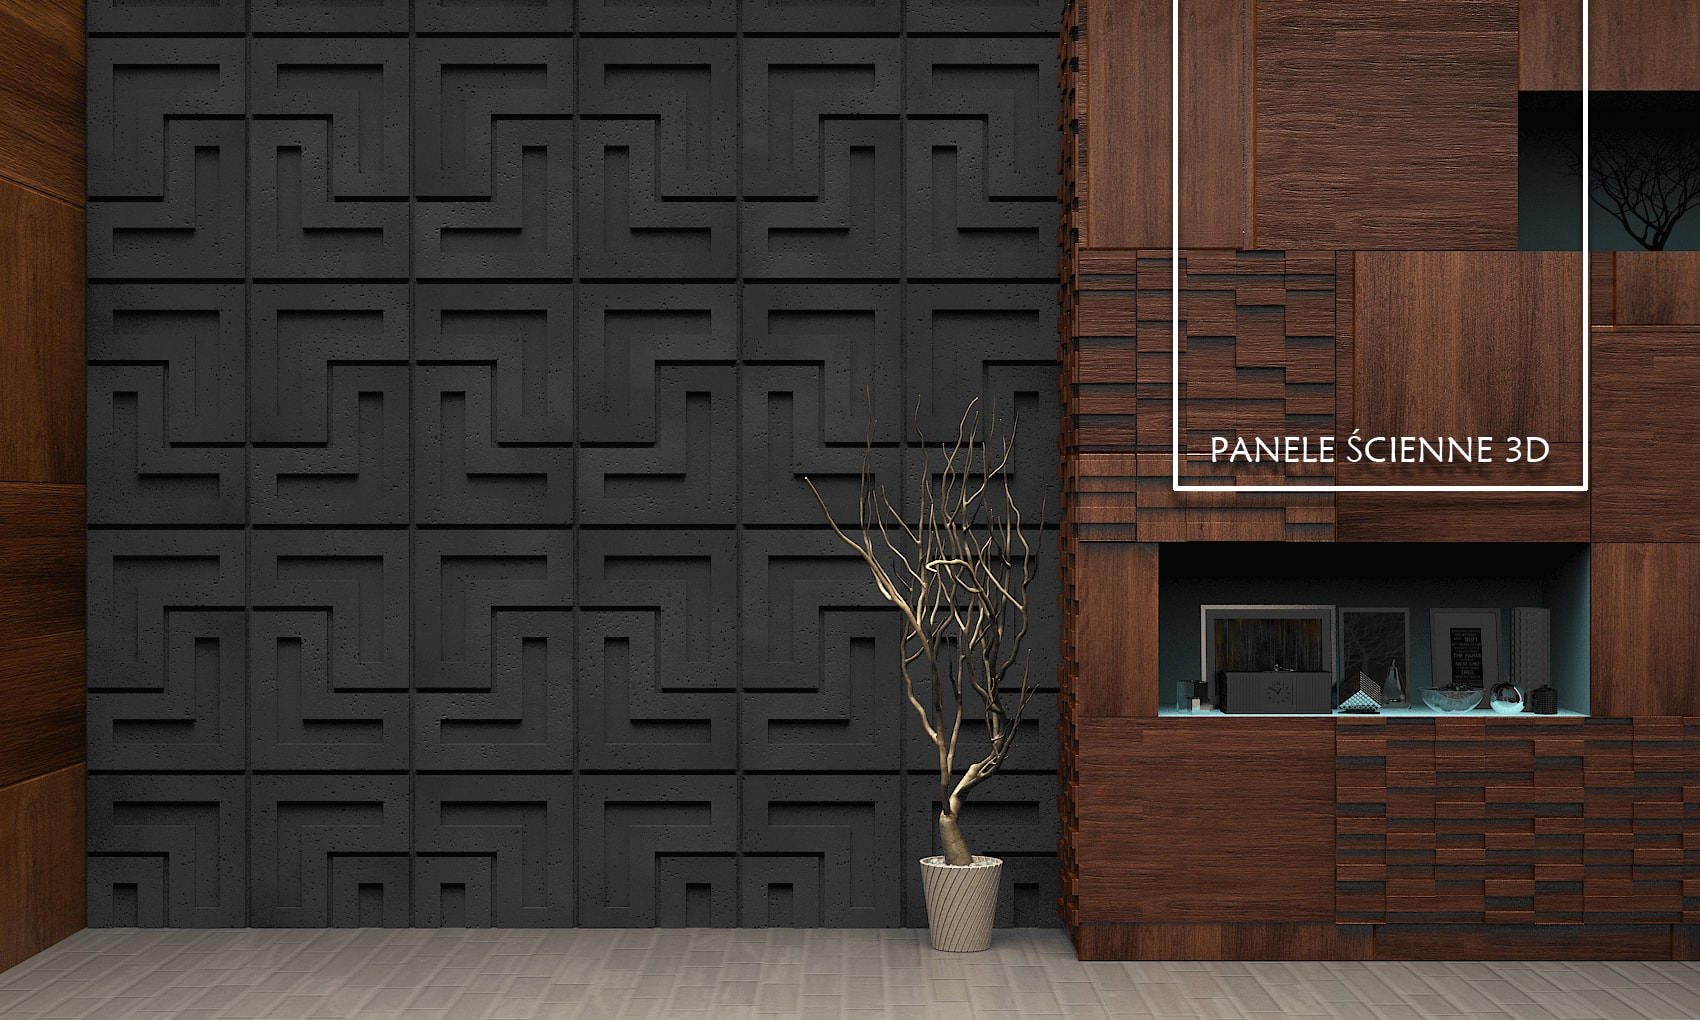 Panele Scienne 3d Leven Design For You